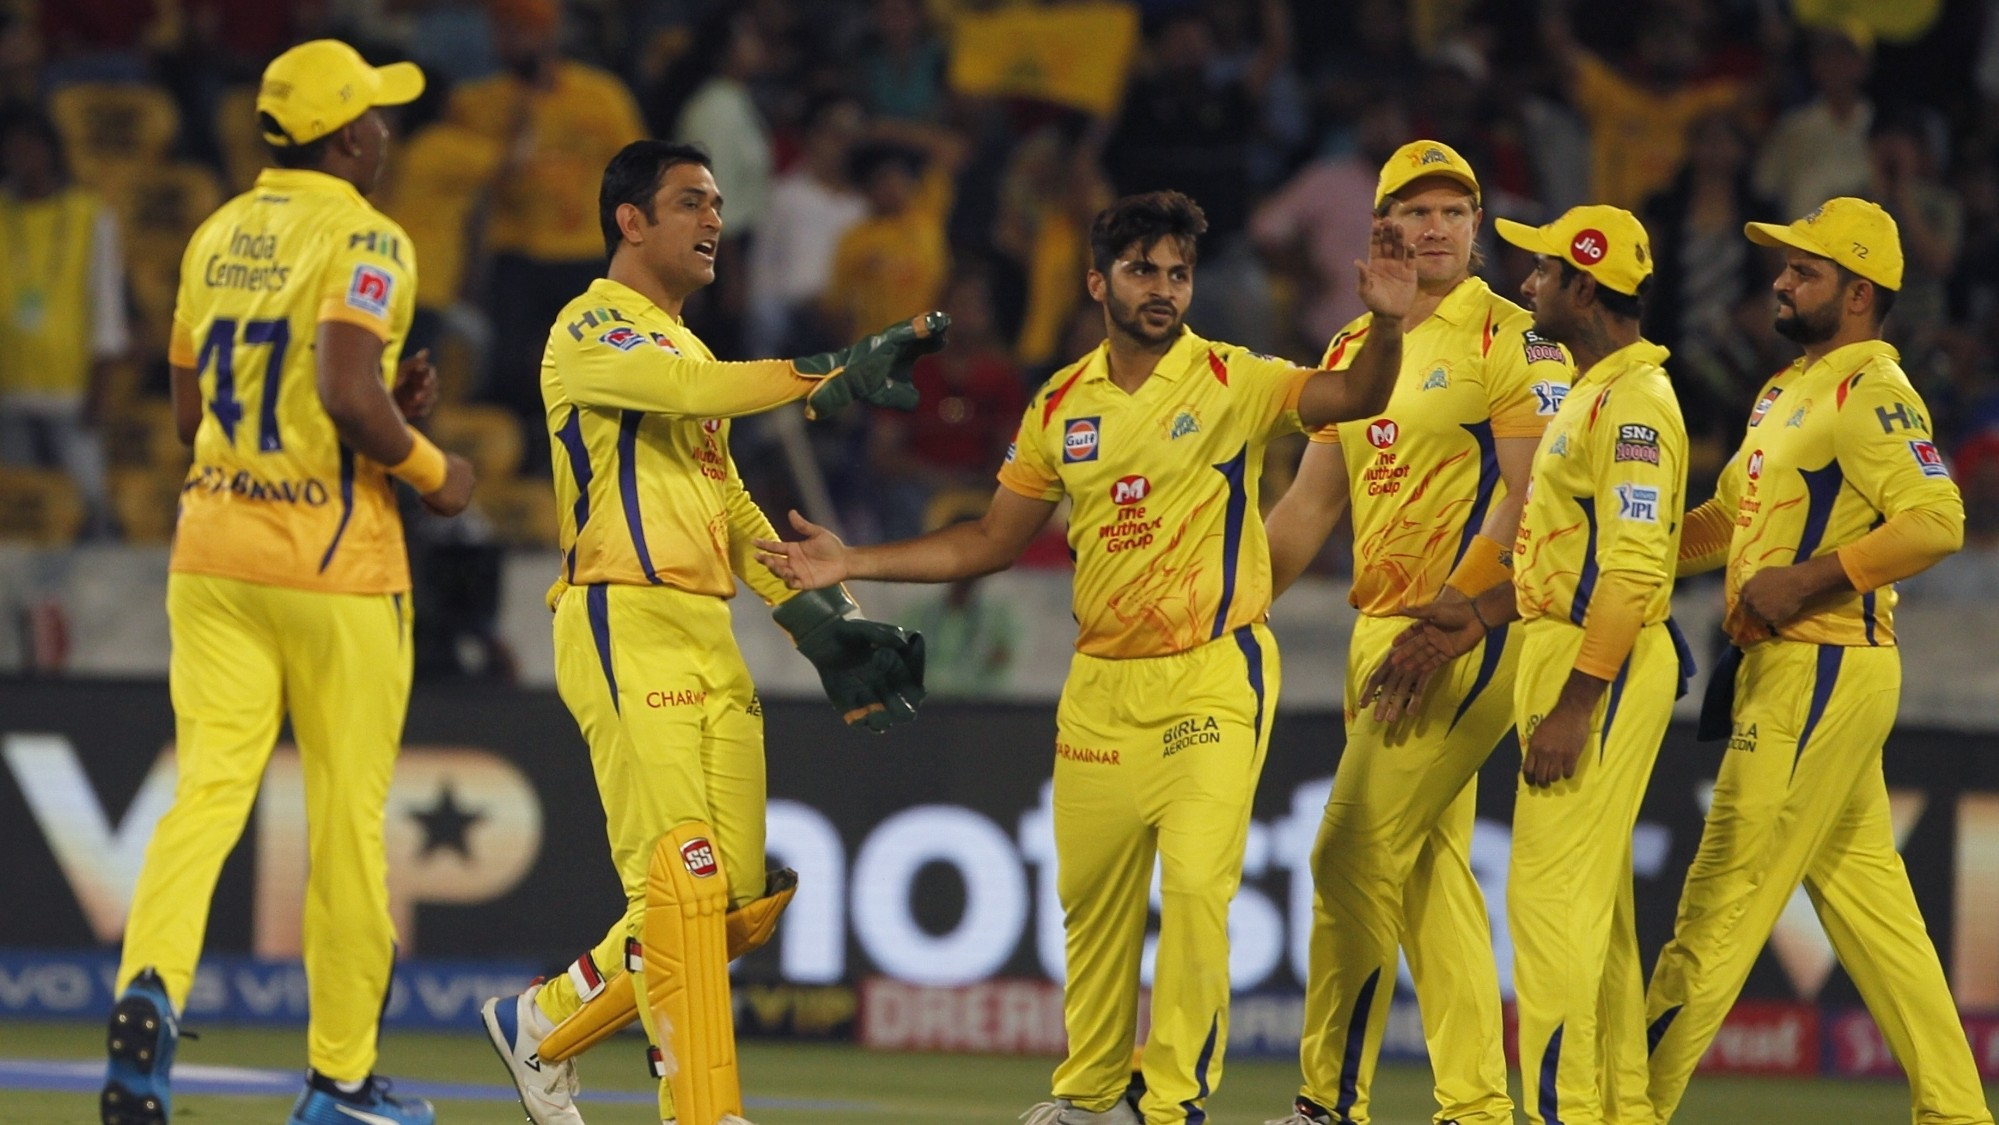 IPL 2020: Chennai Super Kings players not to travel with families to UAE, says report